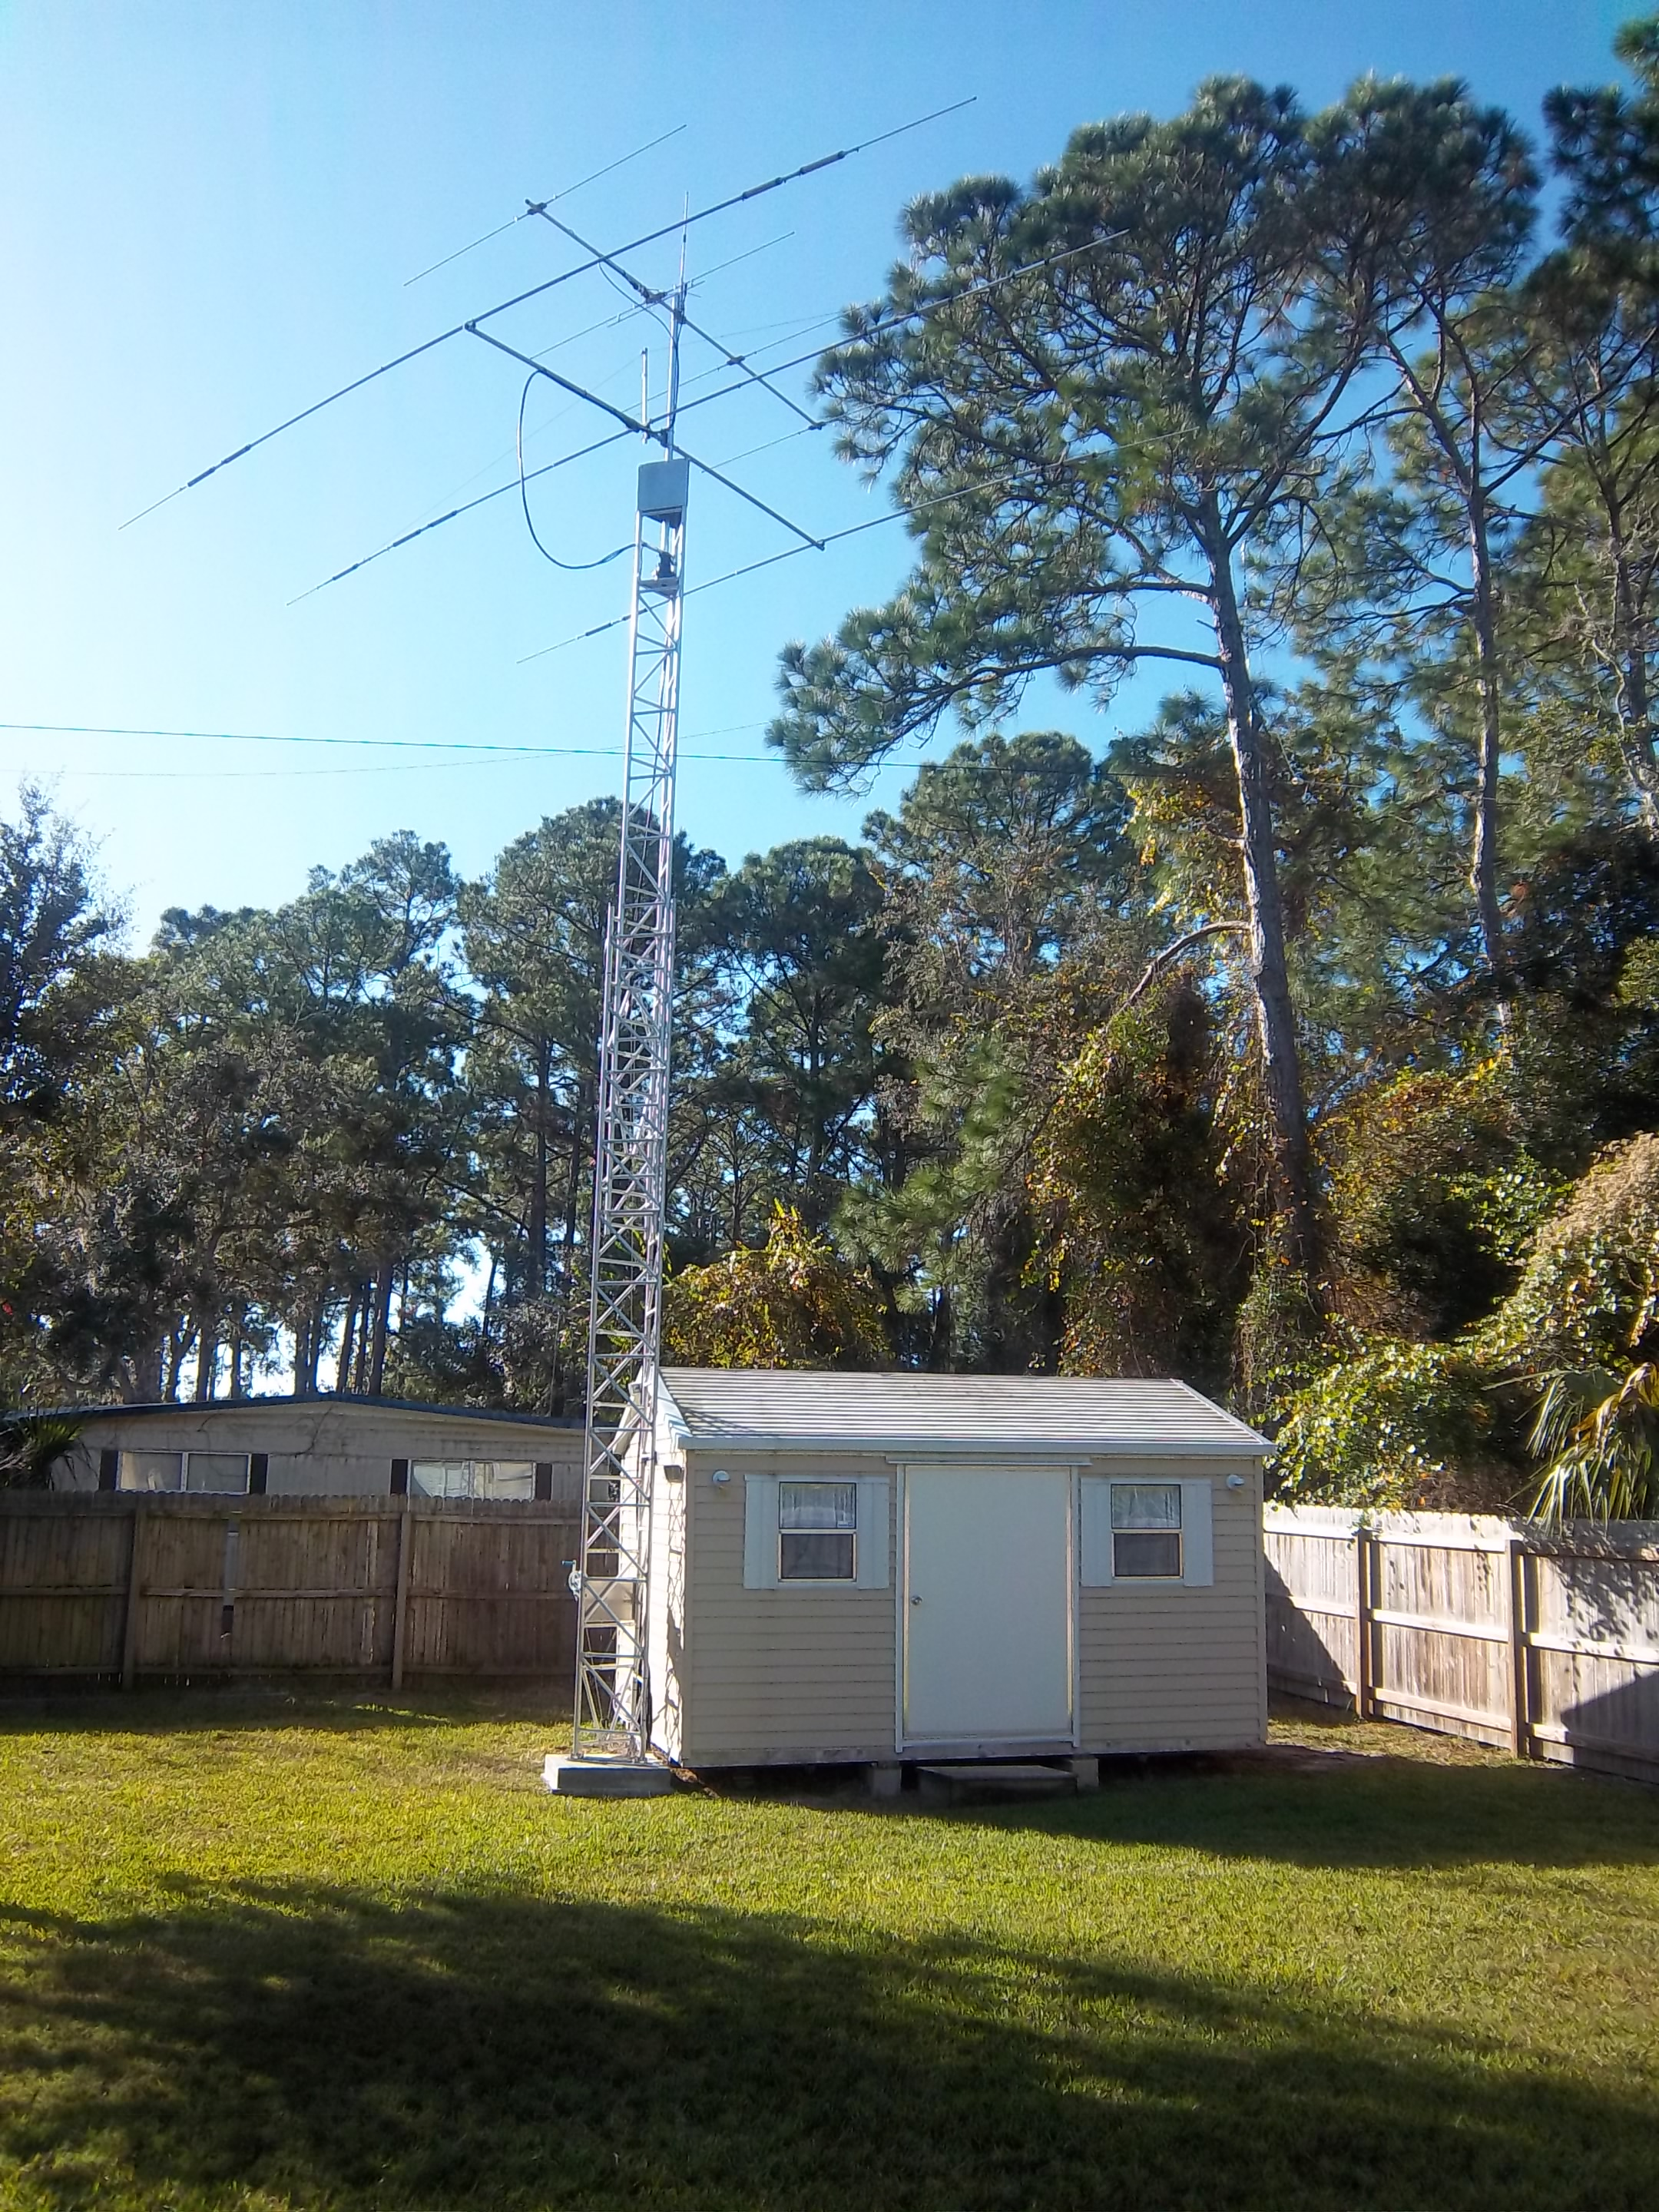 Ham radio antenna towers